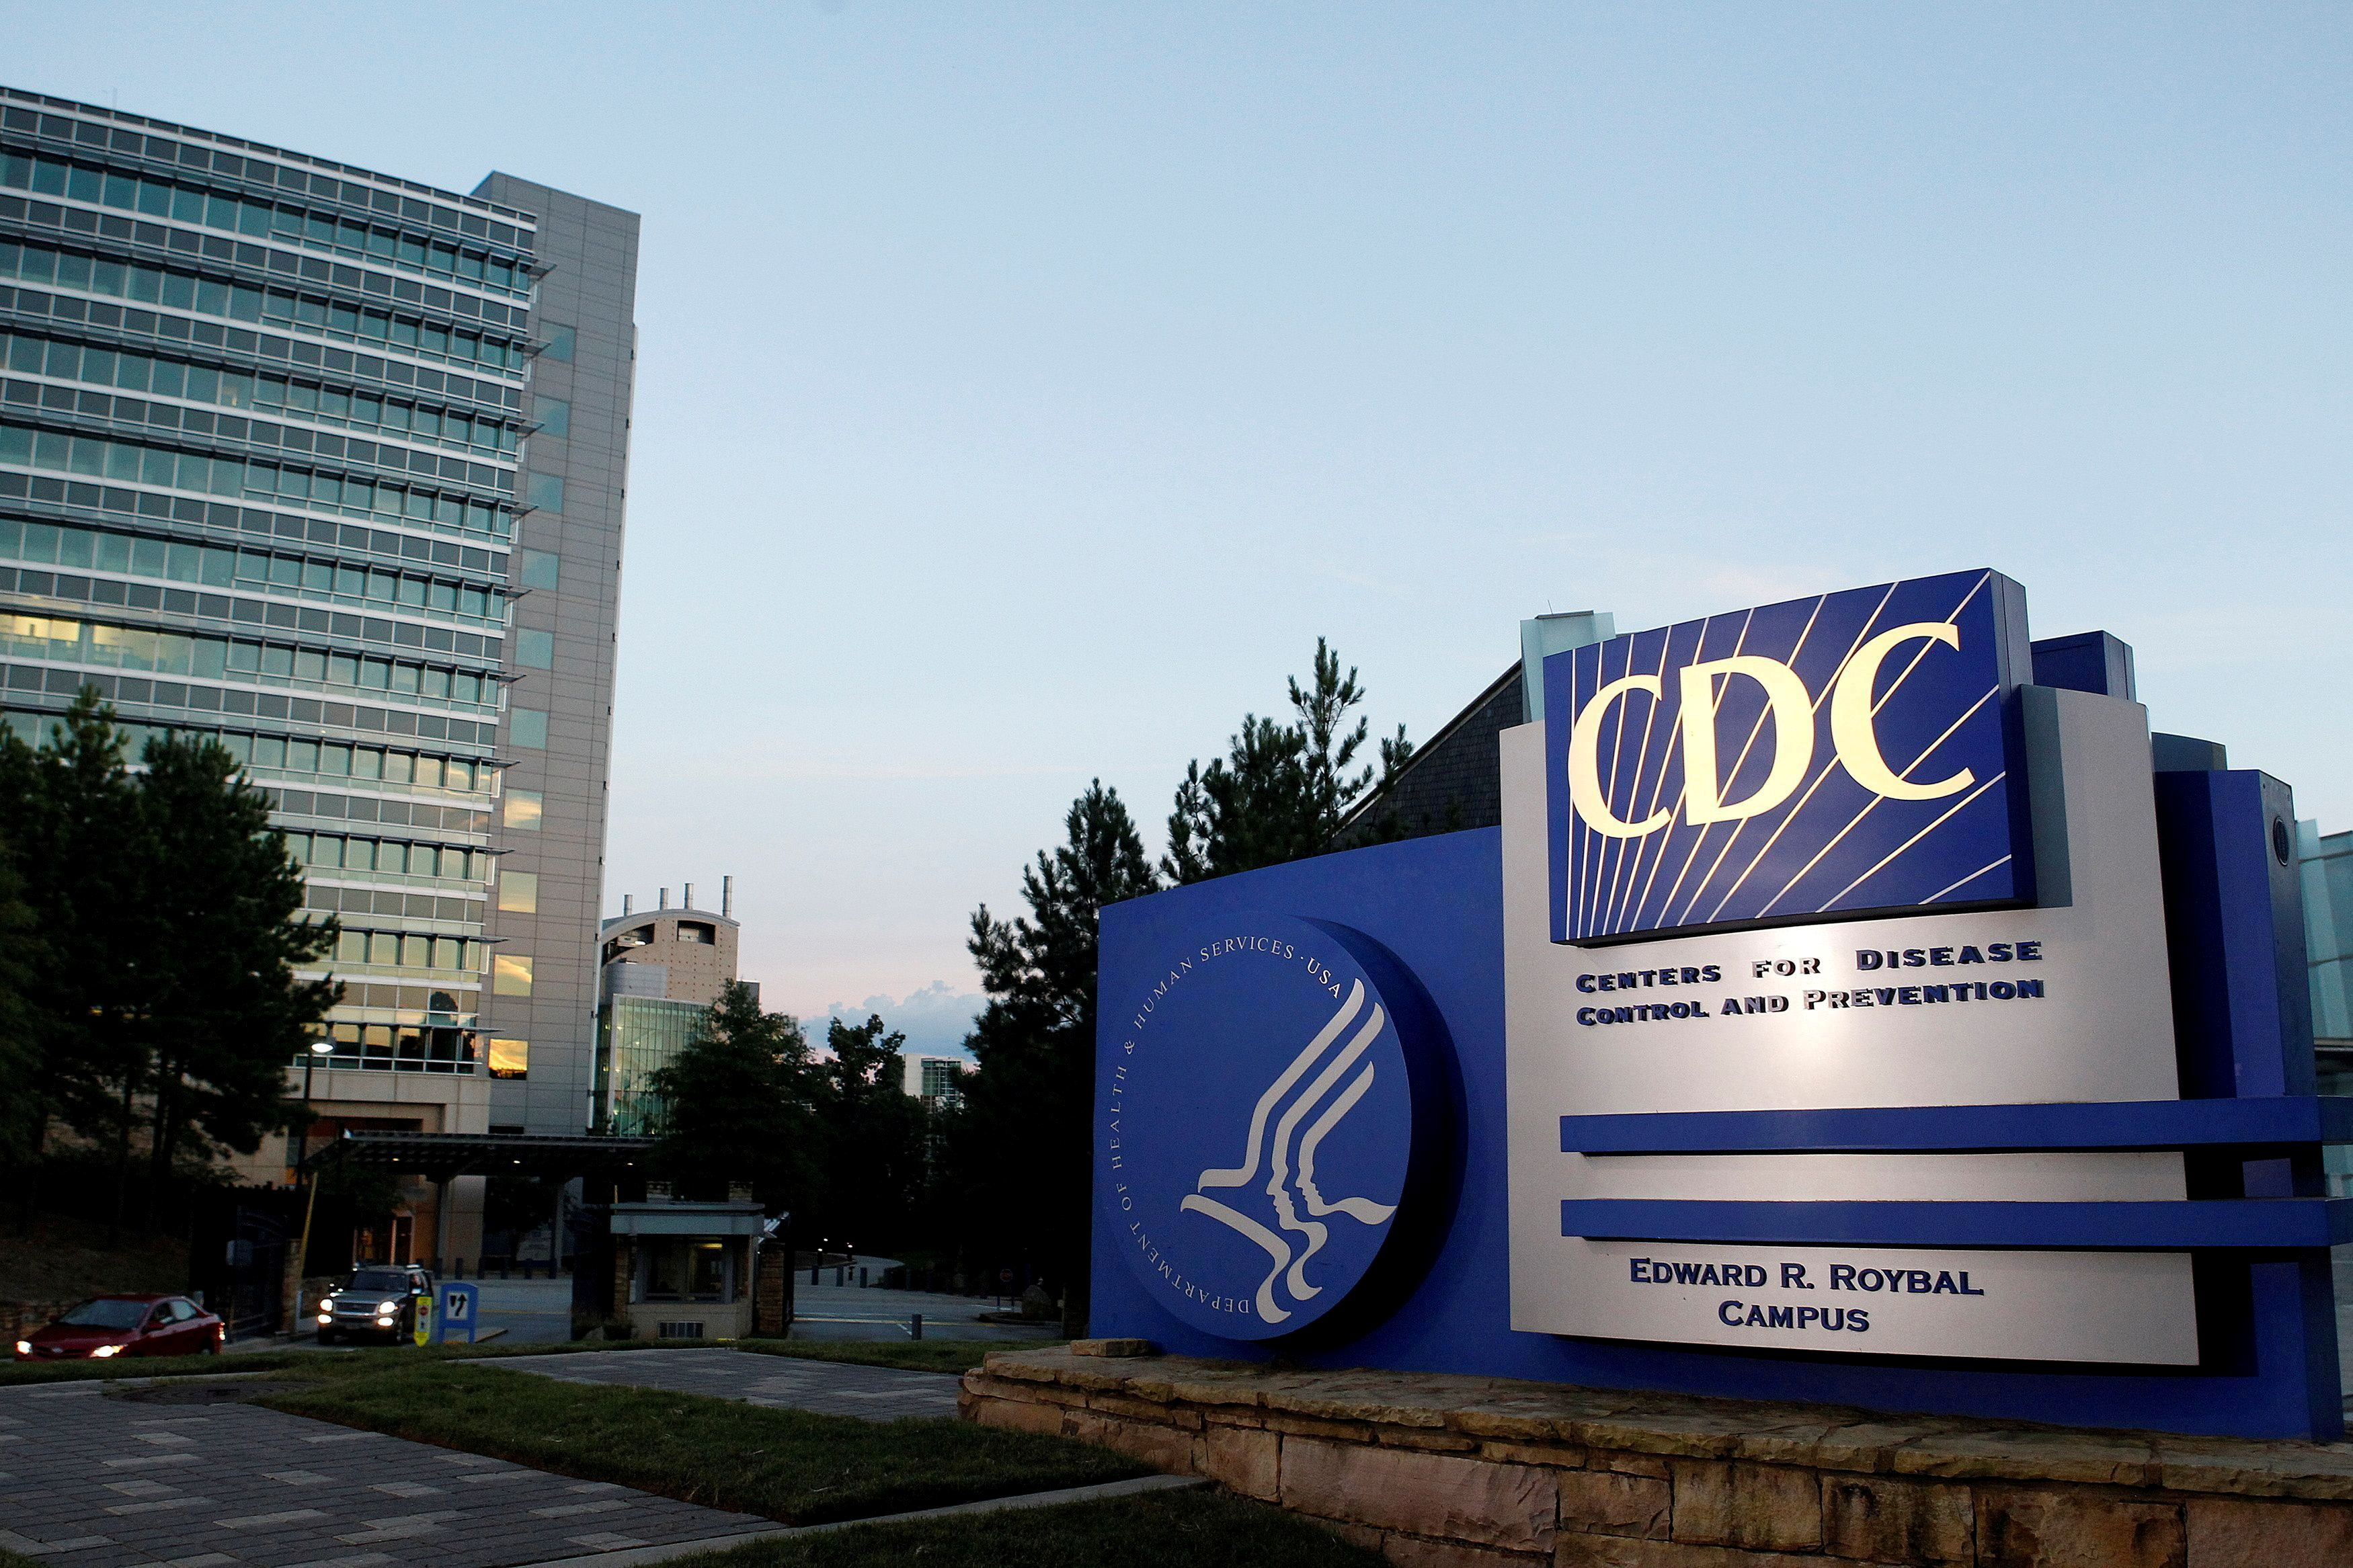 A general view of the U.S. Centers for Disease Control and Prevention (CDC) headquarters in Atlanta, Georgia September 30, 2014.  REUTERS/Tami Chappell